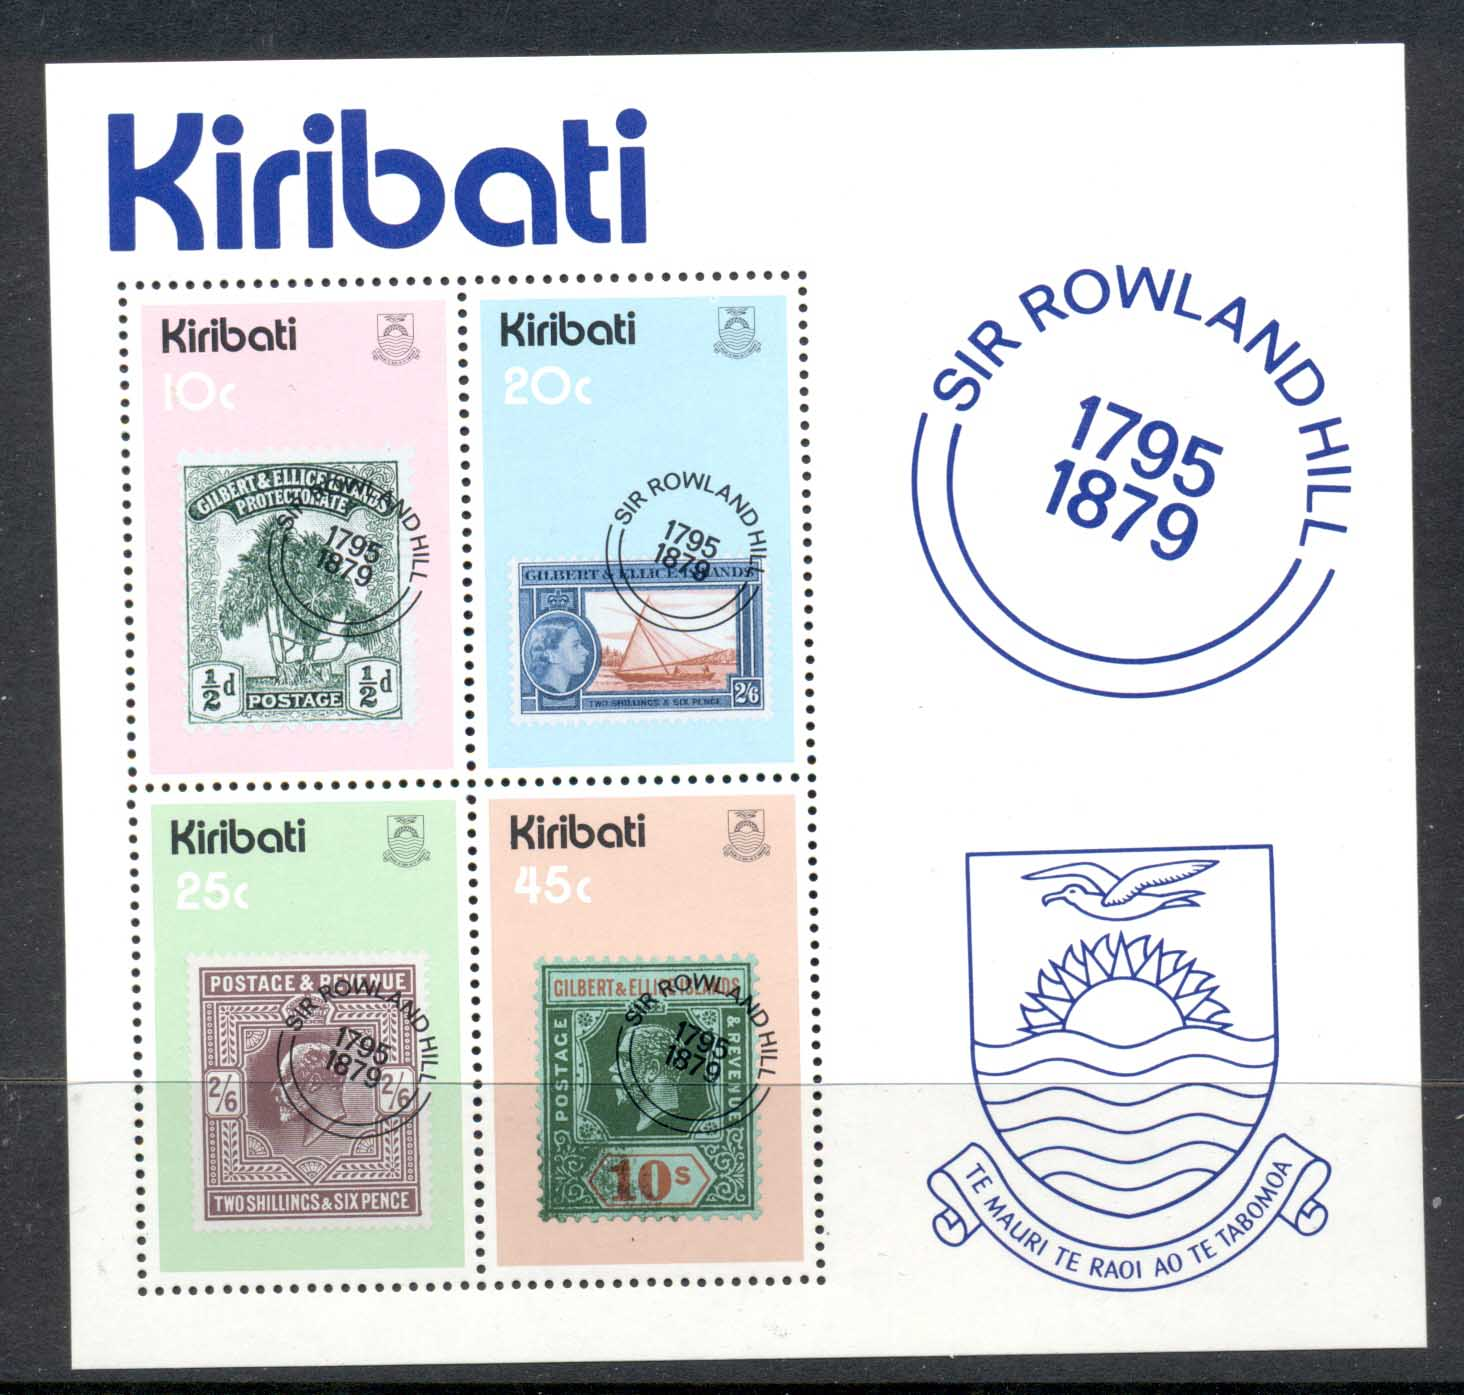 Kiribati 1979 Sir Rowland Hill Death Centenary MS MUH